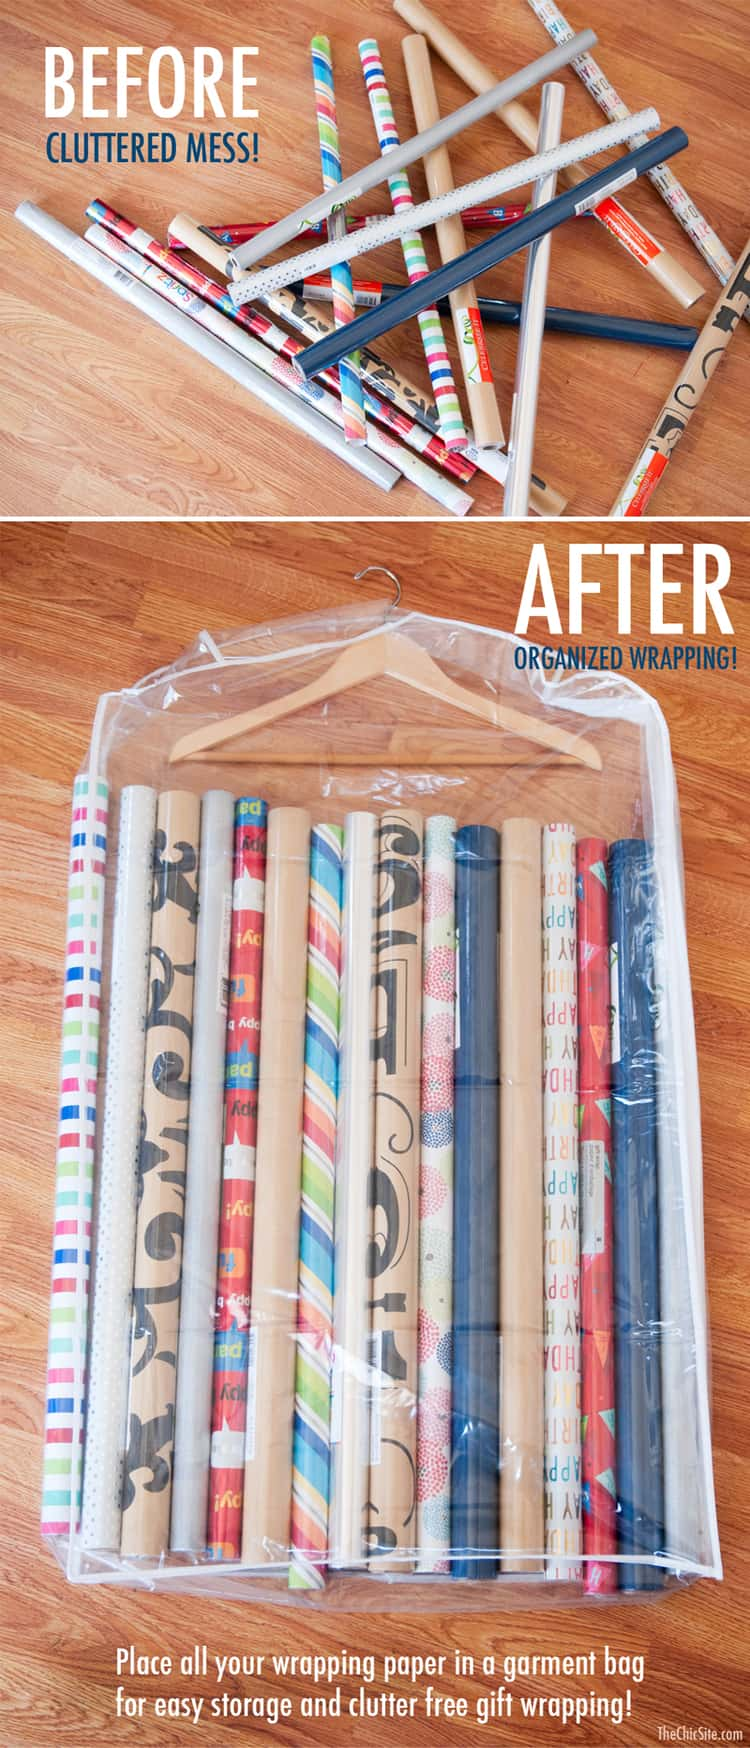 clear garment bag that hangs used to store long gift wrap paper rolls